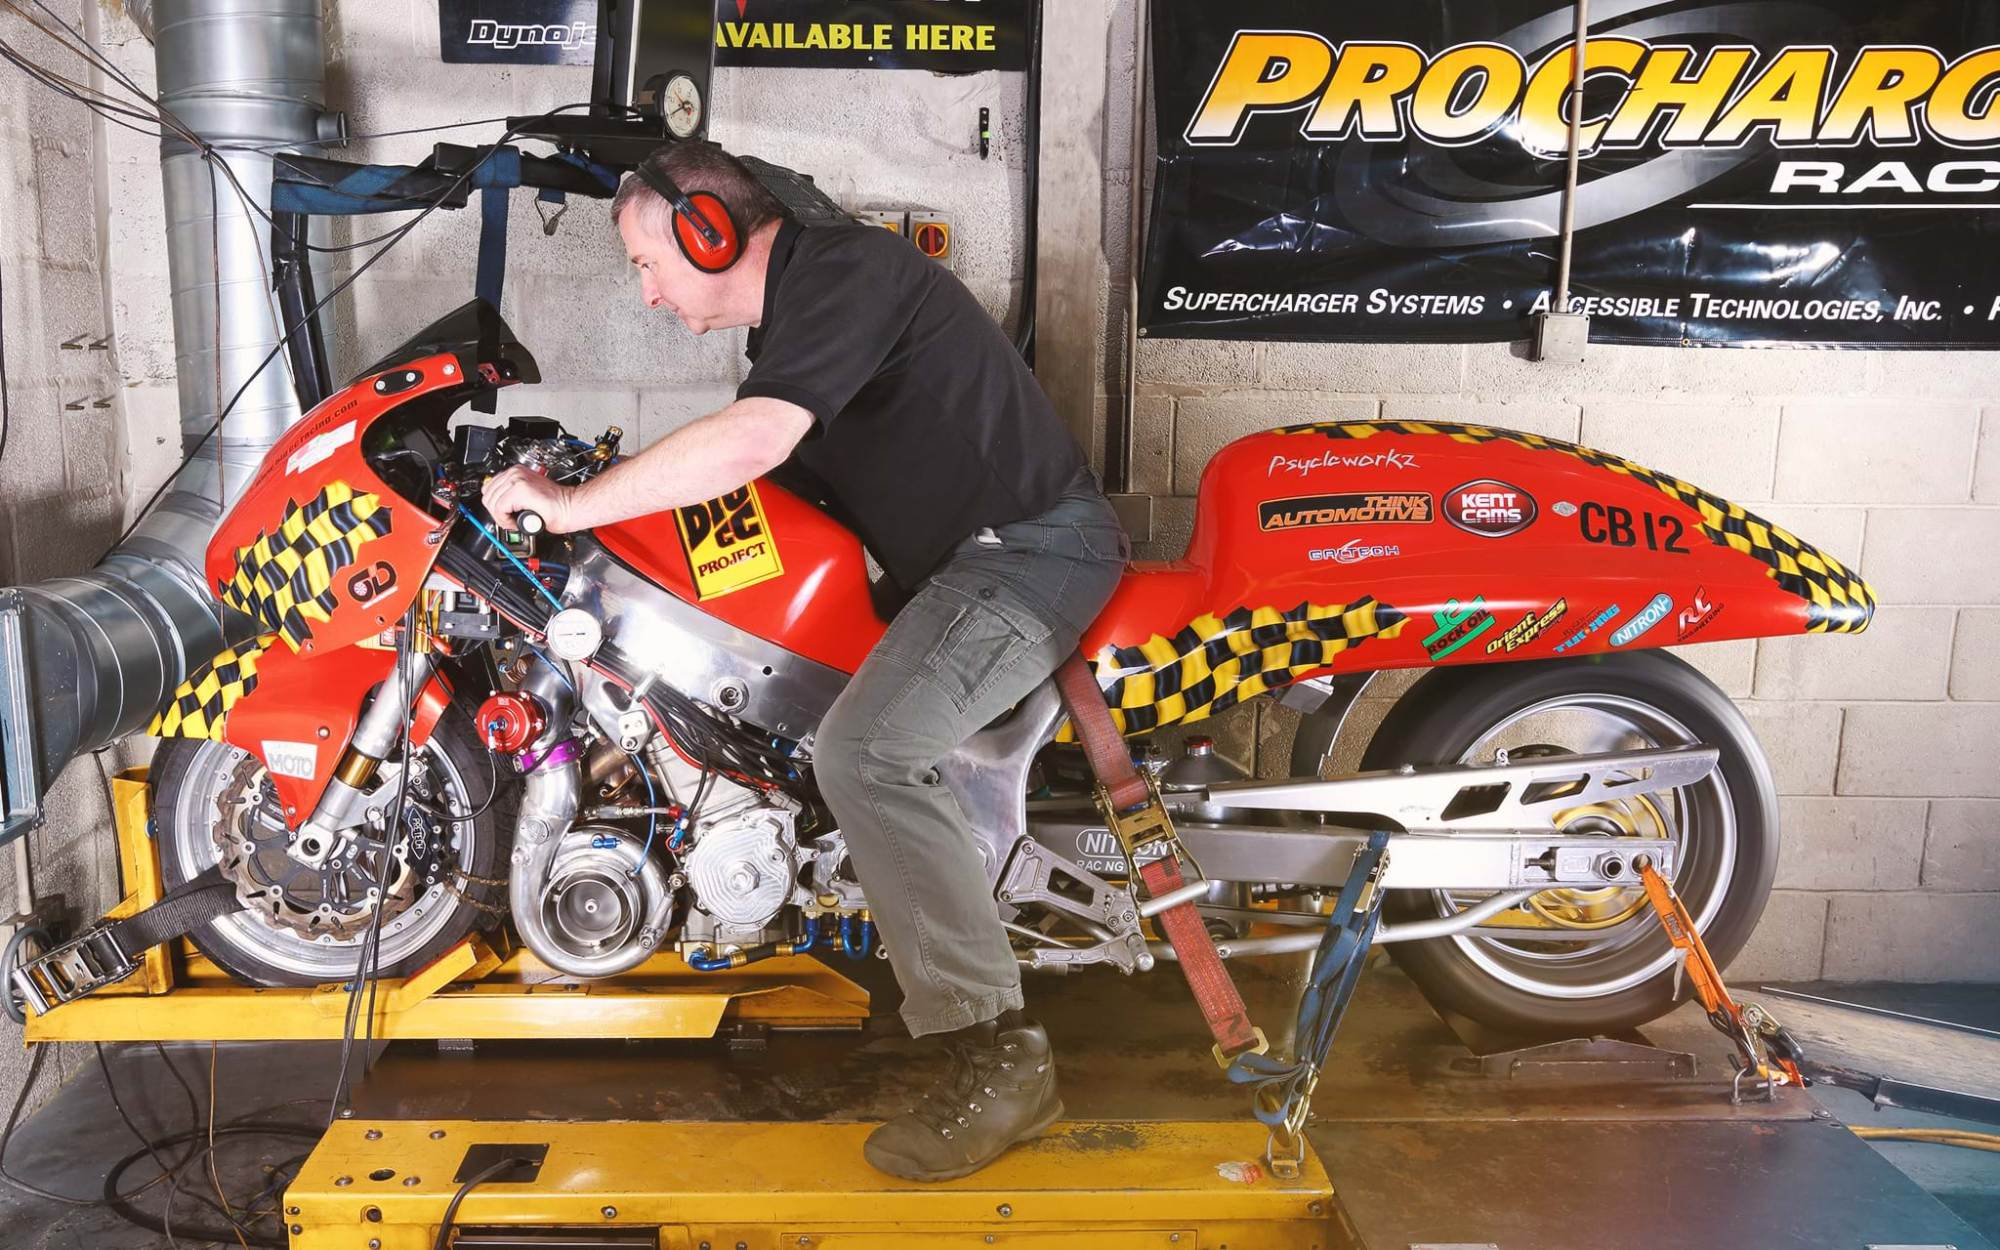 hight resolution of well just about every part has been changed although sean s hayabusa still uses the standard crankcases barrels oil pump and cylinder